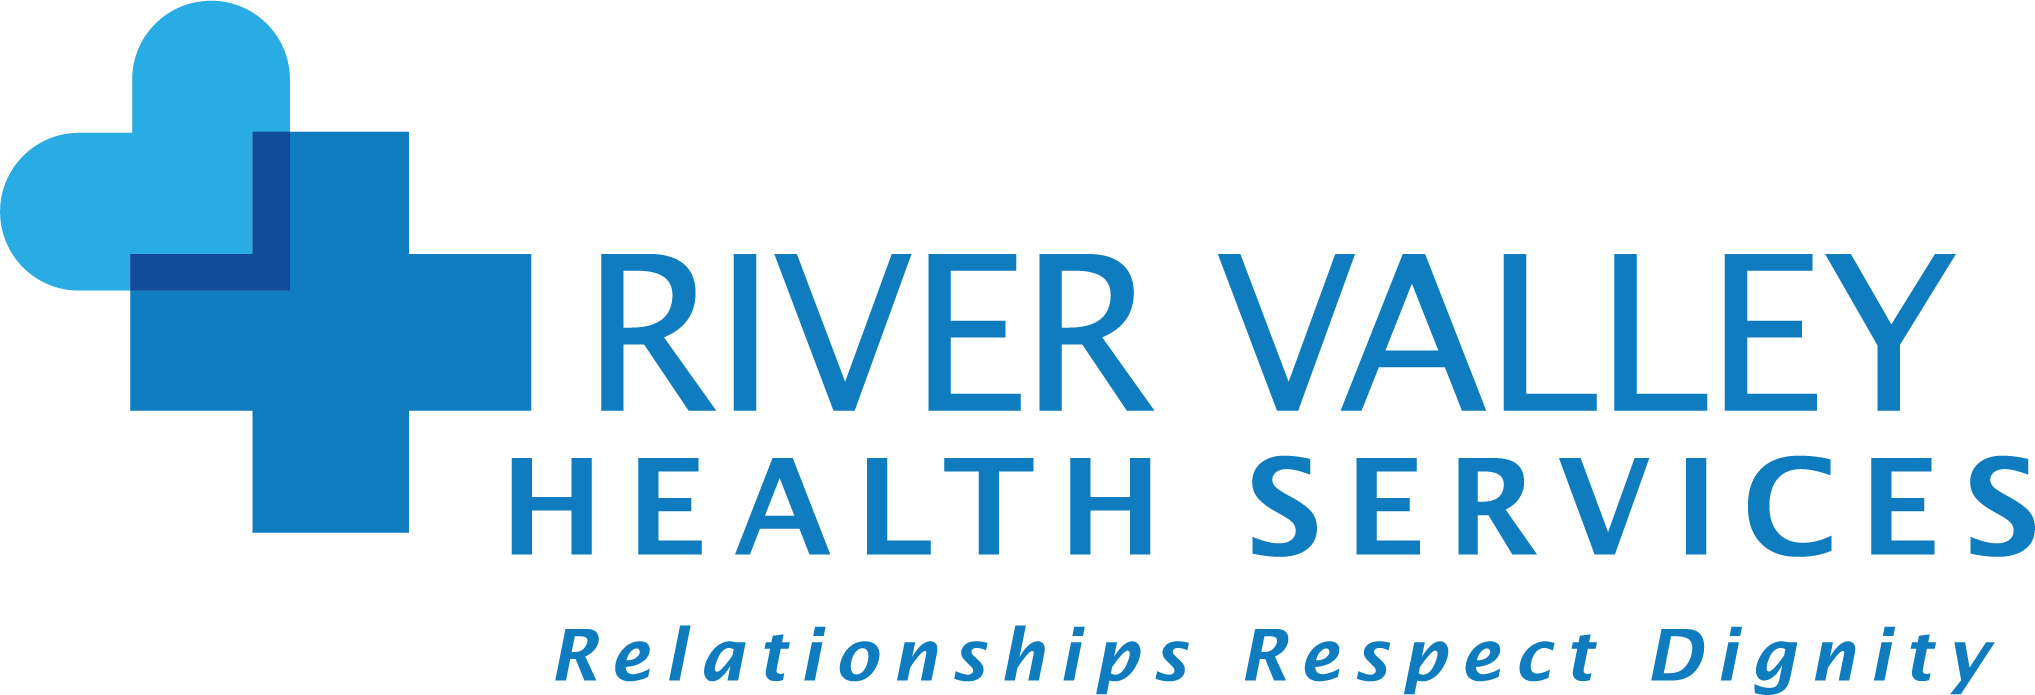 River Valley Health Services logo